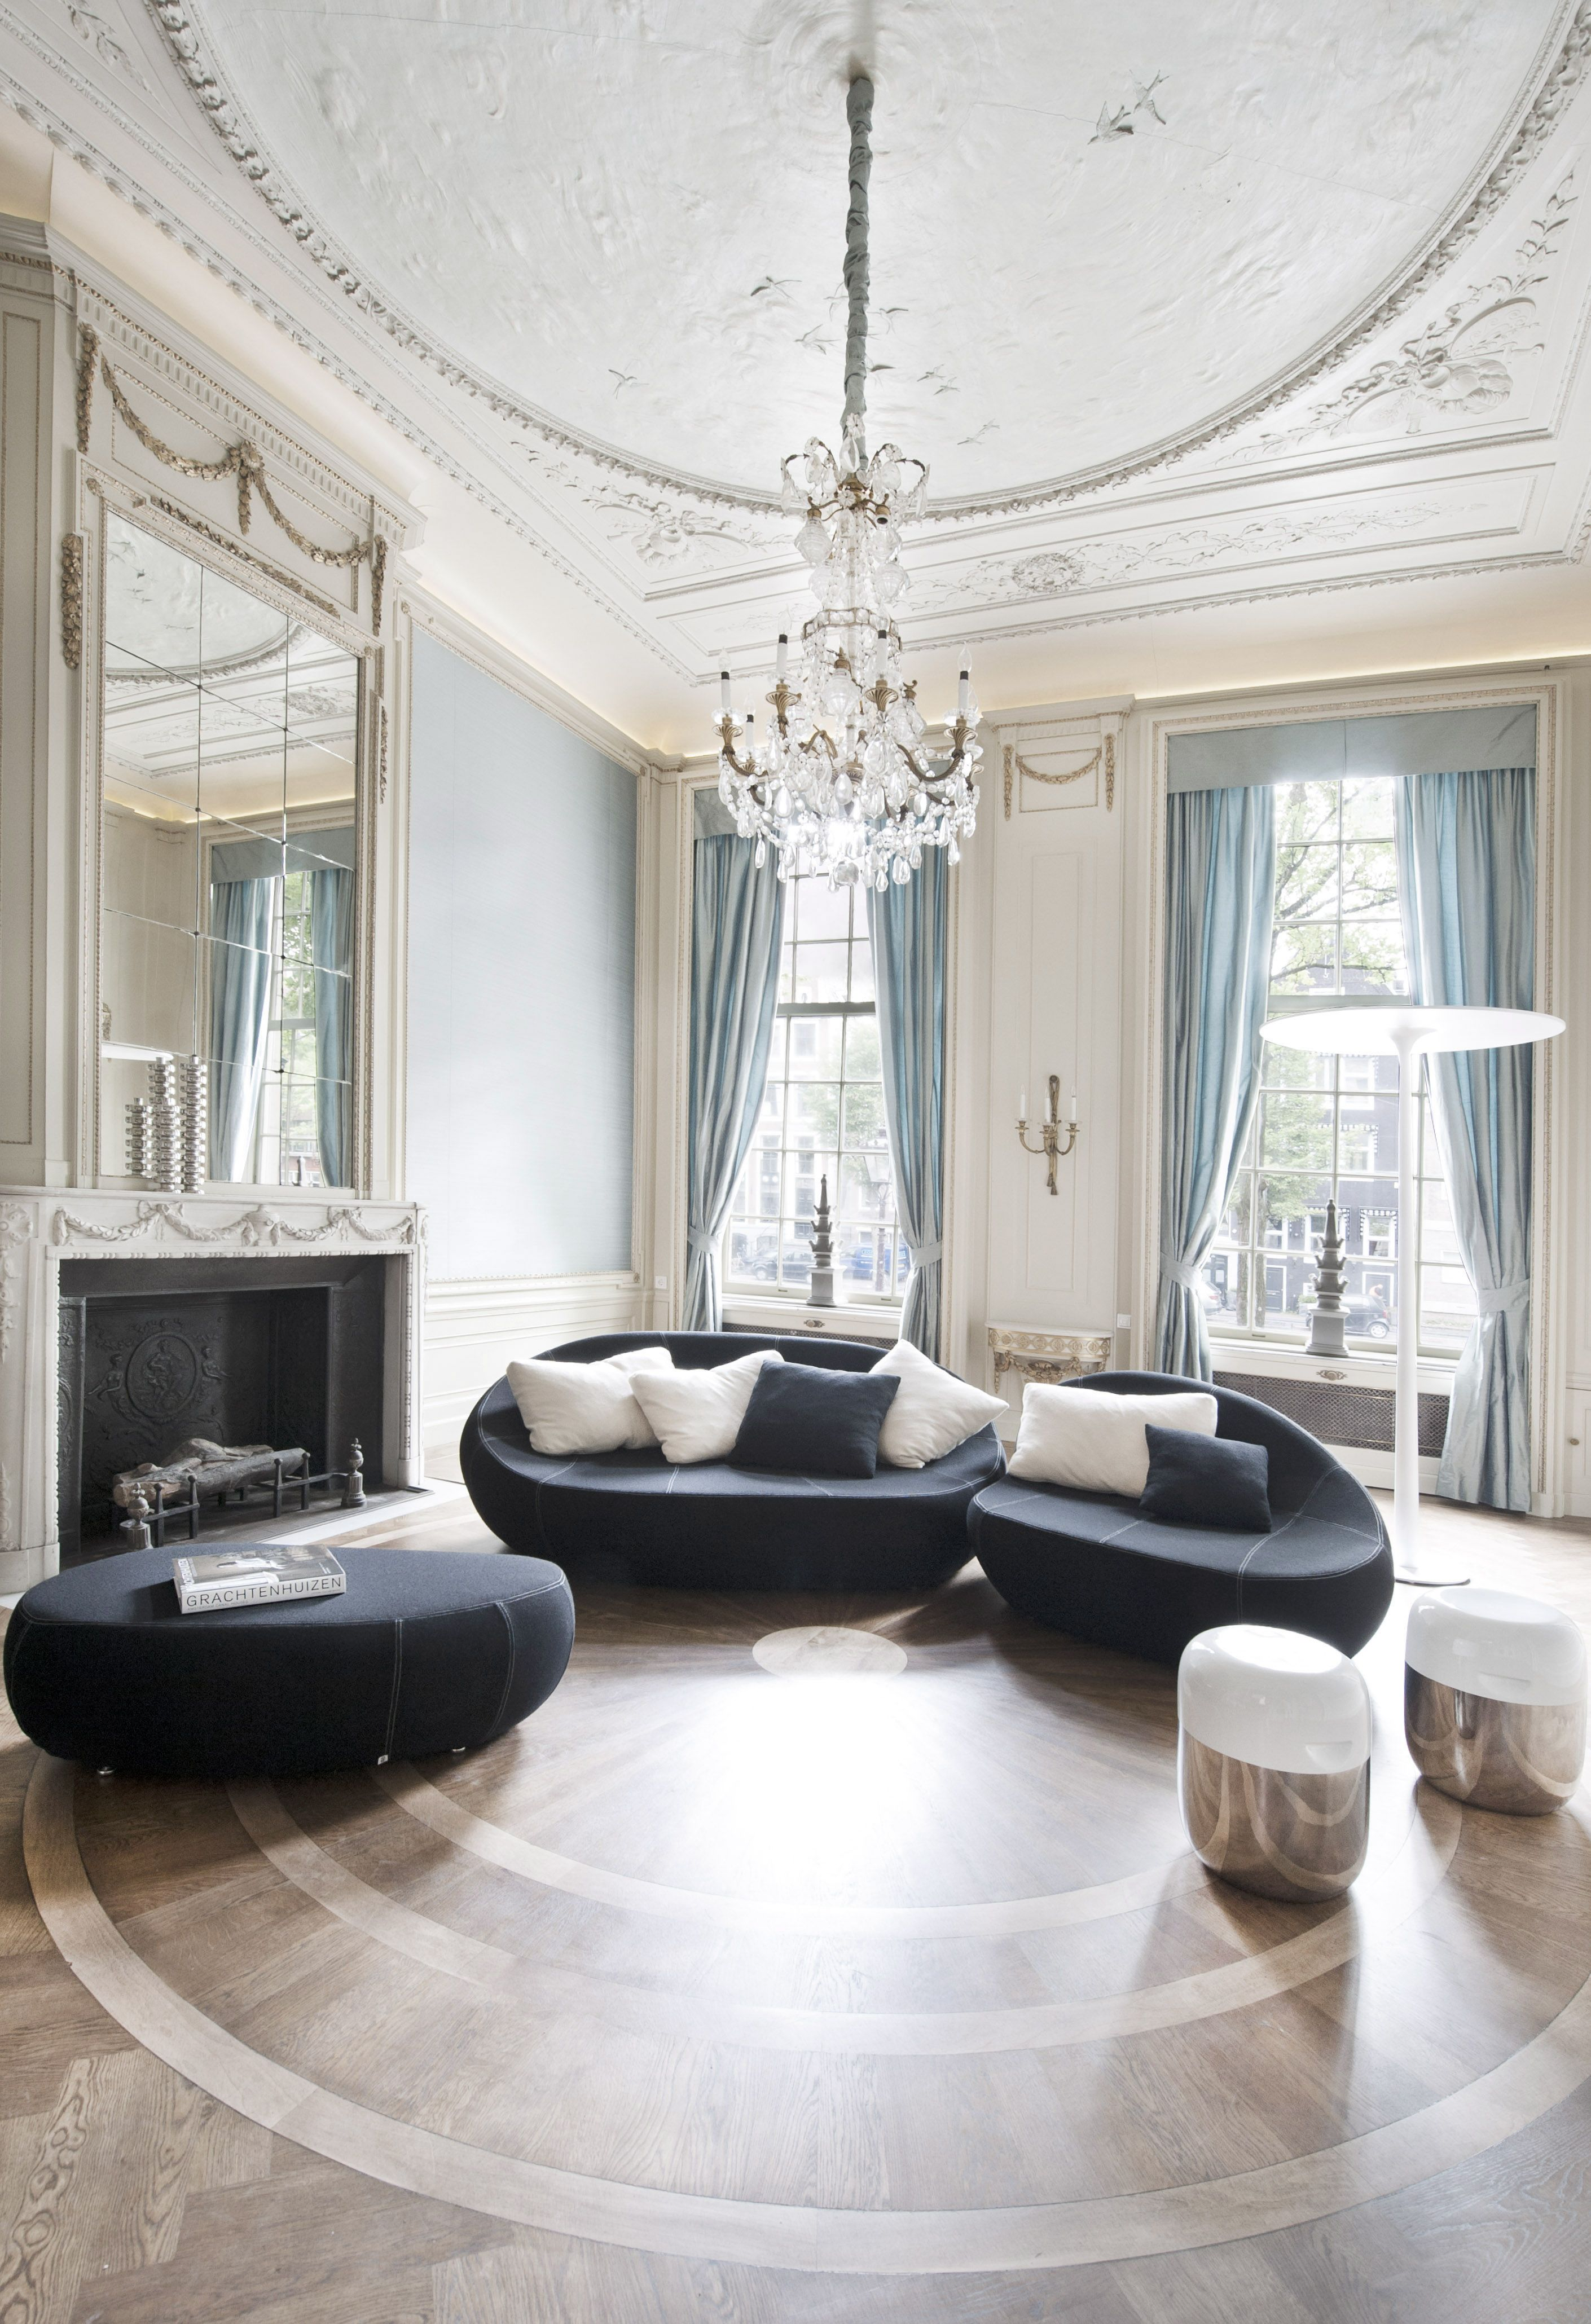 Interior Design Amsterdam Interior Design Monumental Reception Rooms For Replay Office And